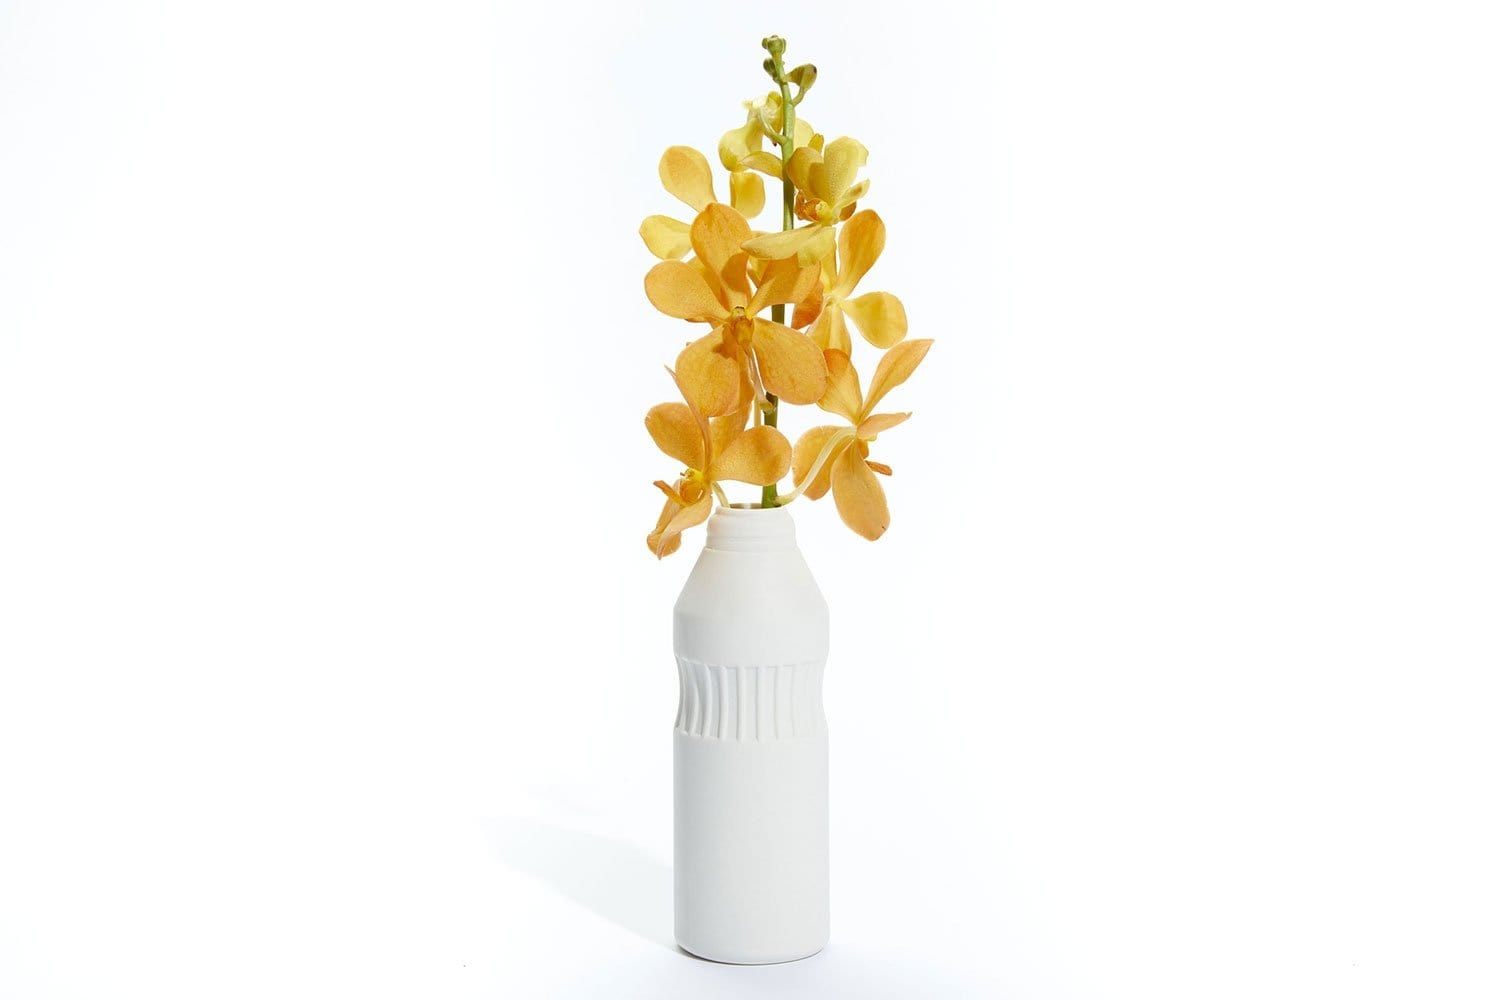 Portico Bottle Vase by Journey of Something | Shop Ceramics | Greenhouse Interiors